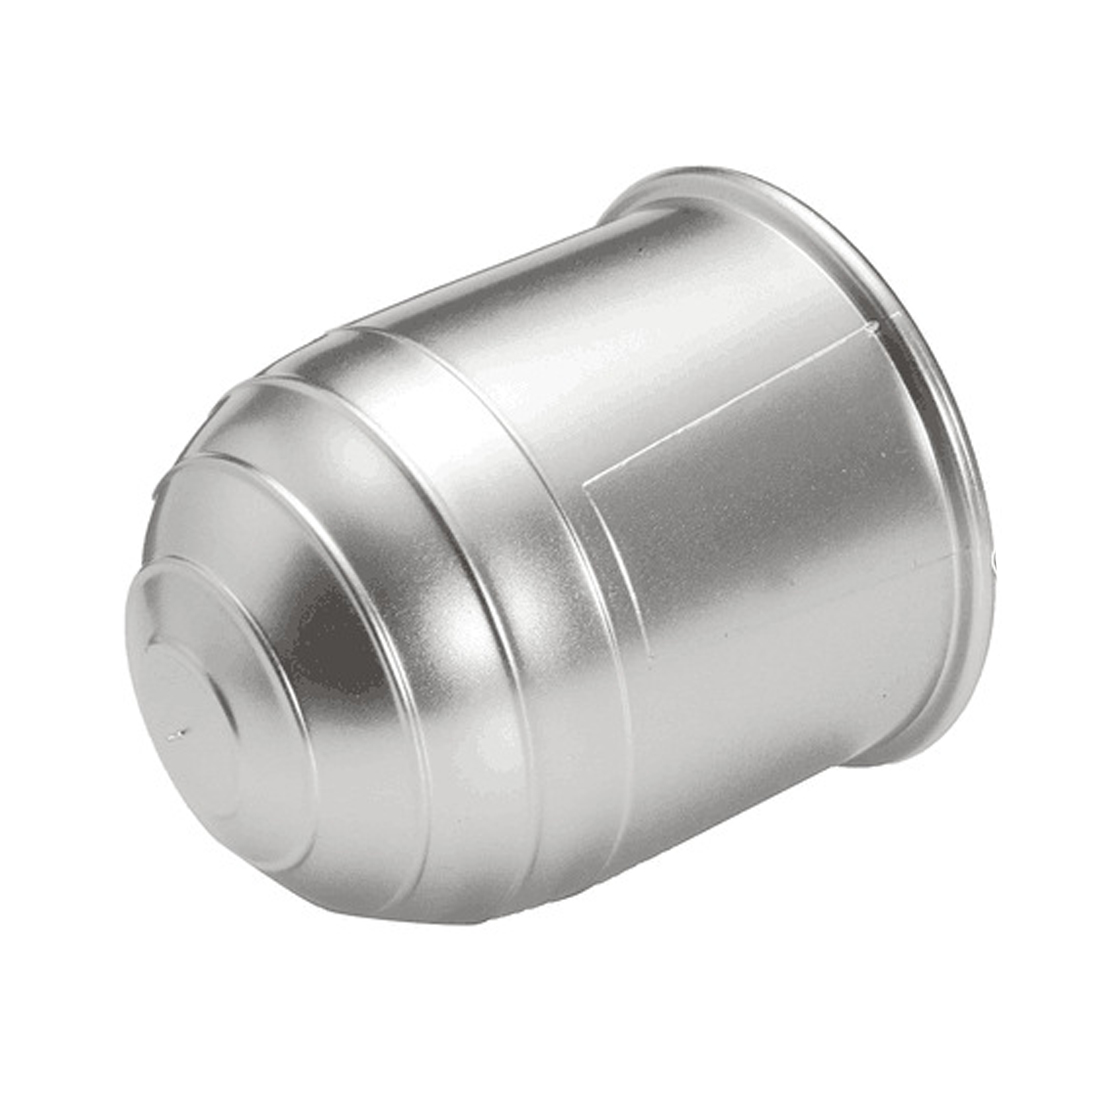 1 x CHROME Plastic Tow Ball Cover //Cap//Protector 50mm for Swan Neck Flange NEW